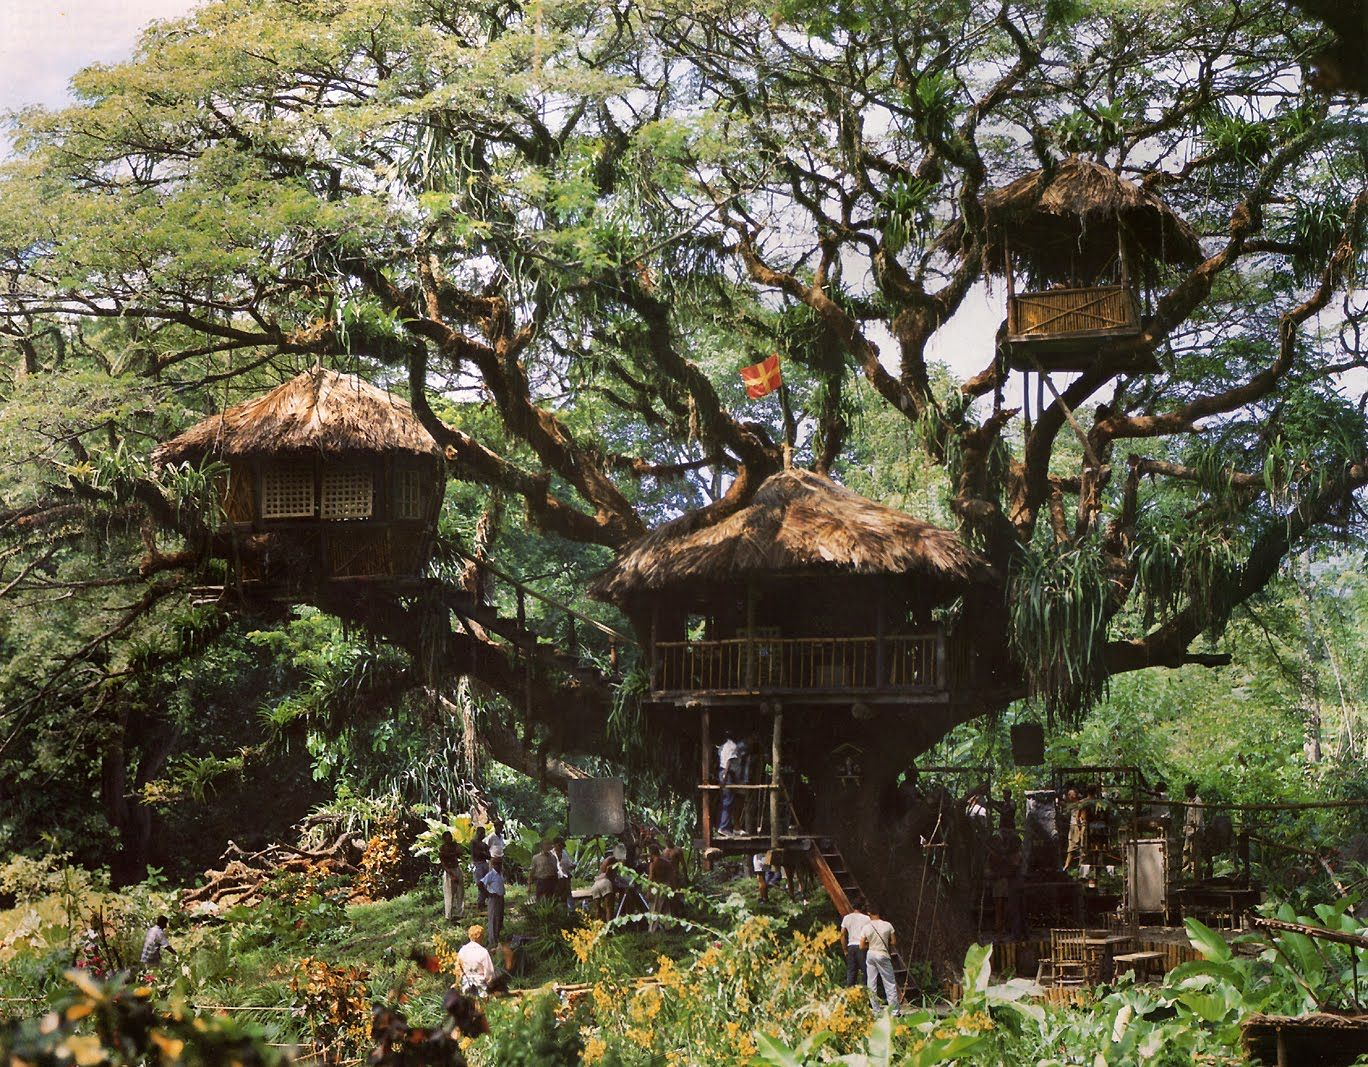 31 Awesome Tree Houses - Win Gallery